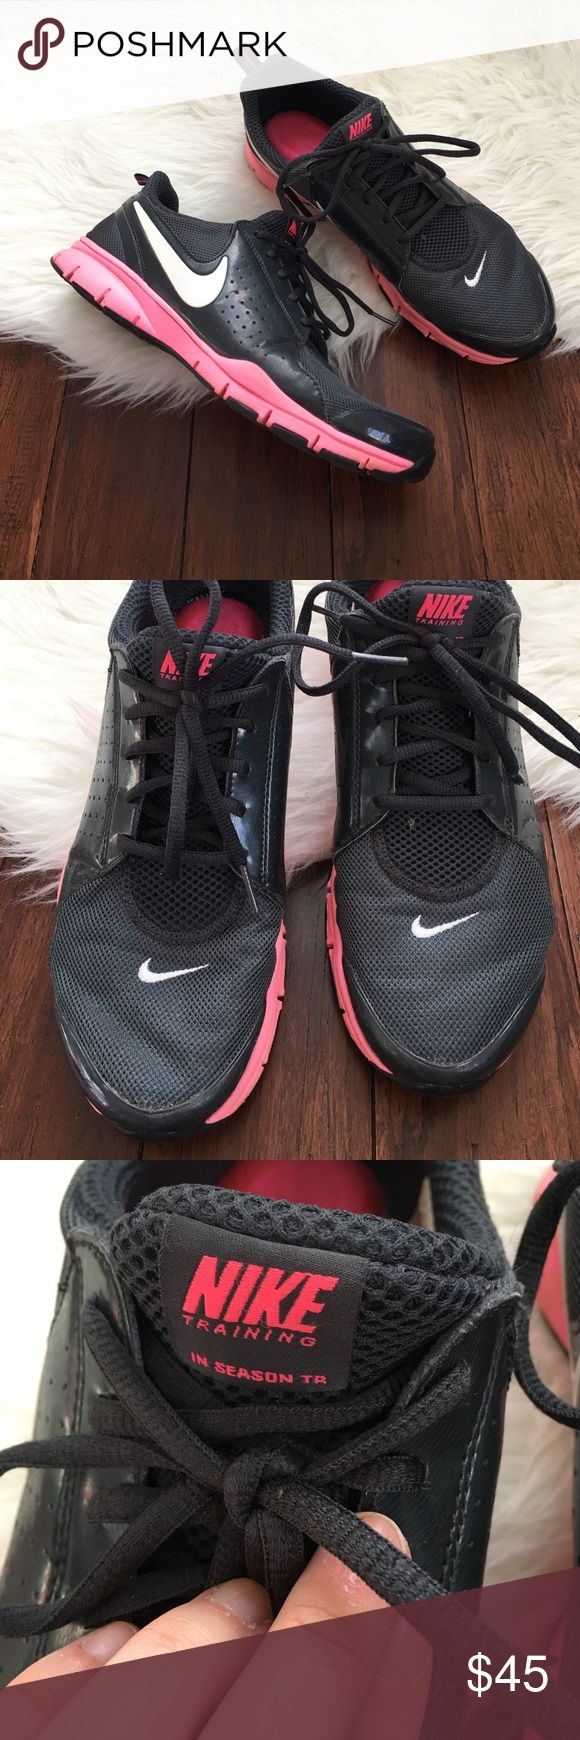 Nike In Season TR Memory Foam Sneakers Excellent used condition. Wear is shown in the photos, which is very minimal. Extremely comfortable, flexible, lightweight and perfect for running! Features memory foam insoles. Plenty of life left in them! Nike Shoes Athletic Shoes